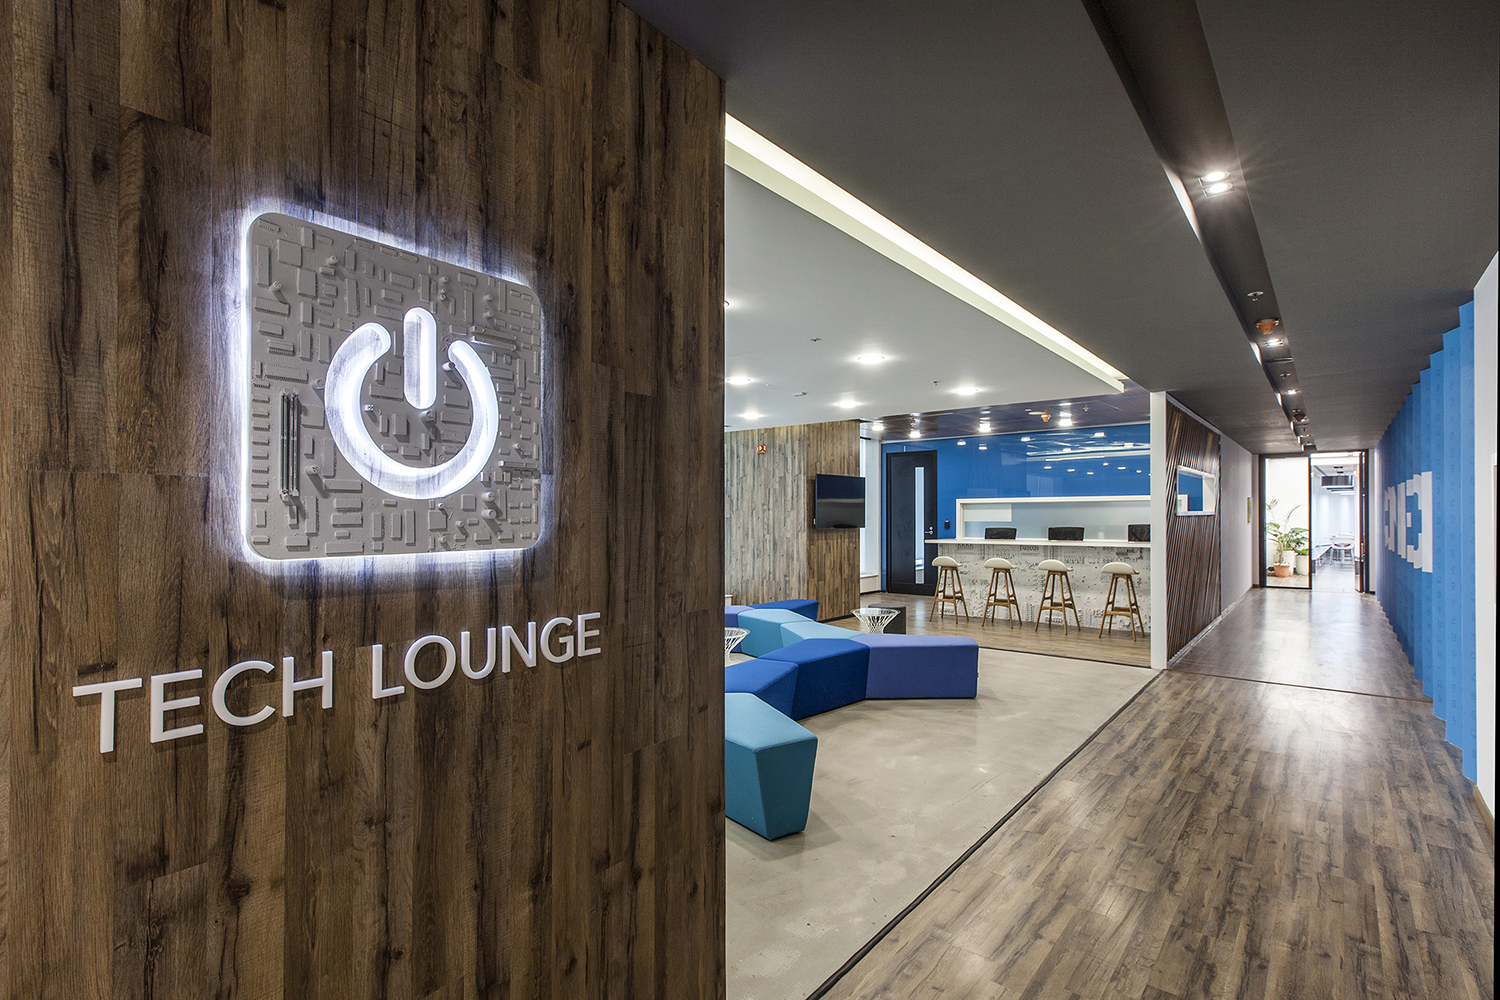 LinkedIn Tech Lounge